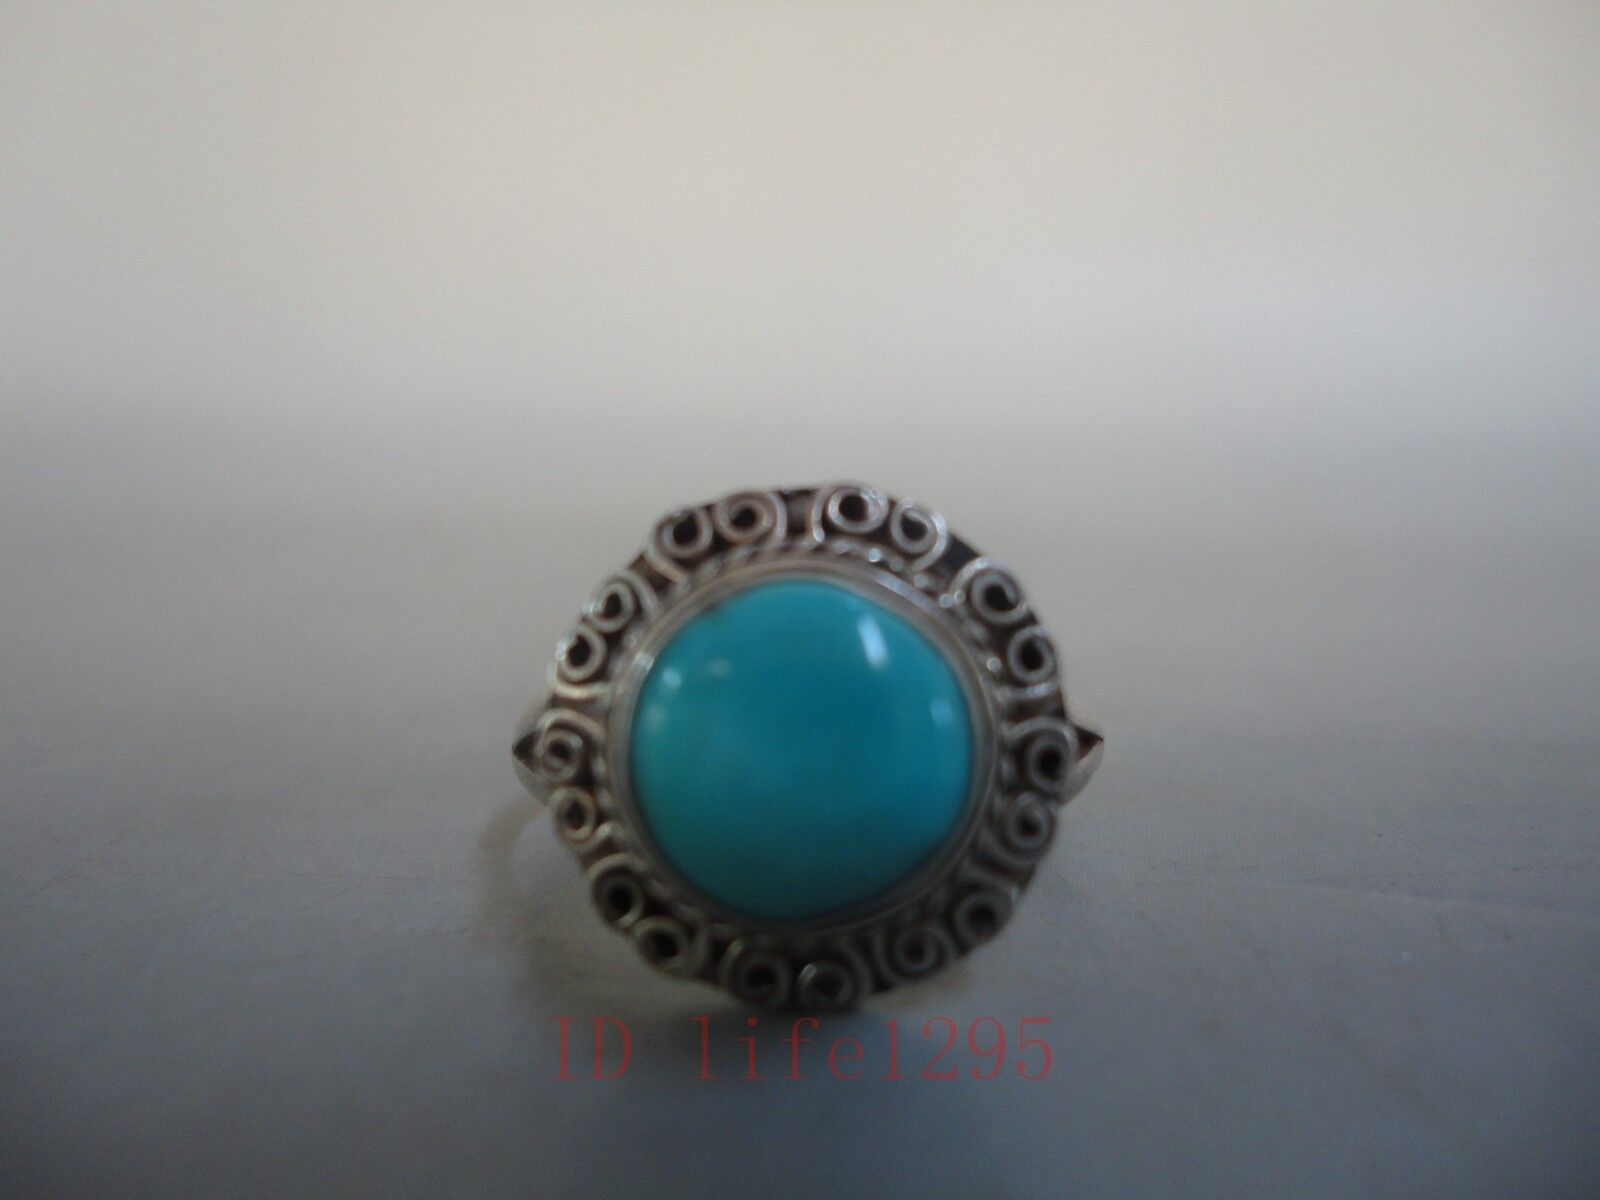 Collection Scarce China Ancient Silver Ring Mosaic Natural Turquoise Decoration